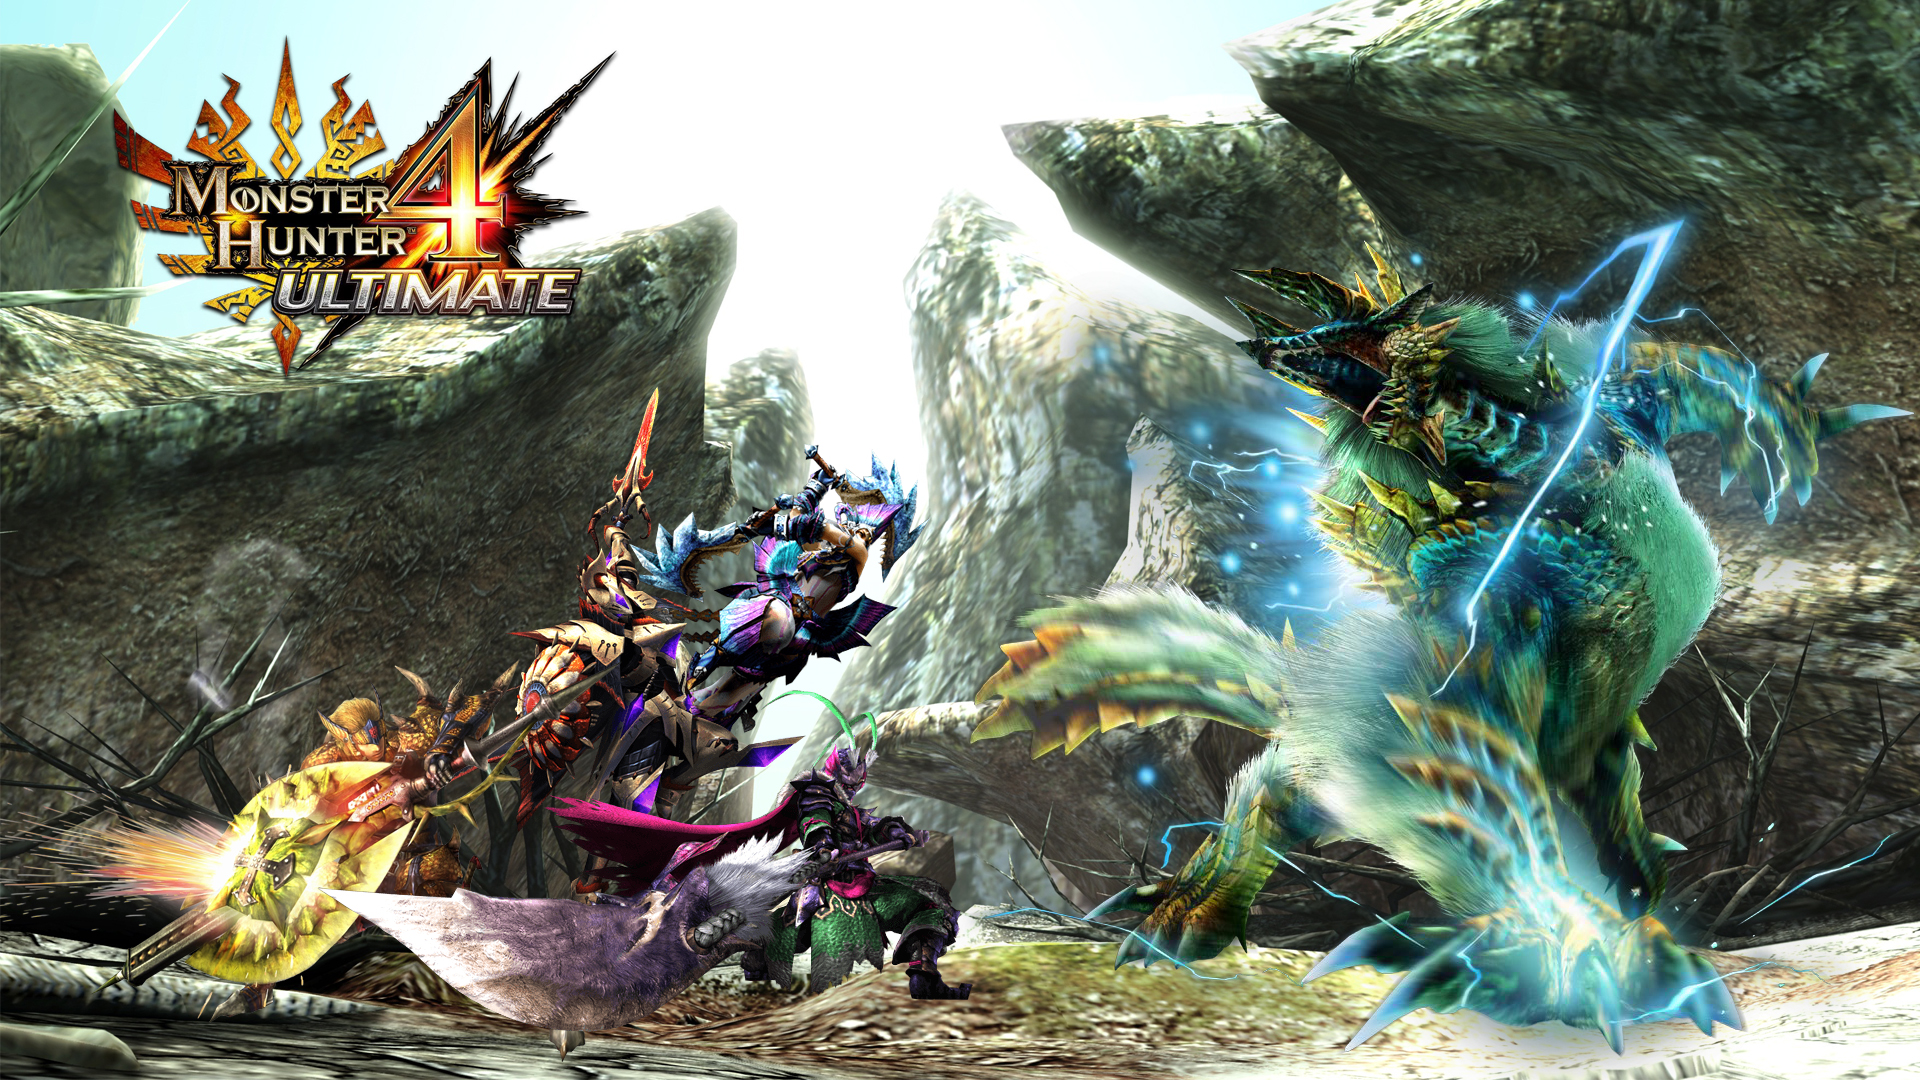 Monster hunter 4 ultimate porn erotic gallery